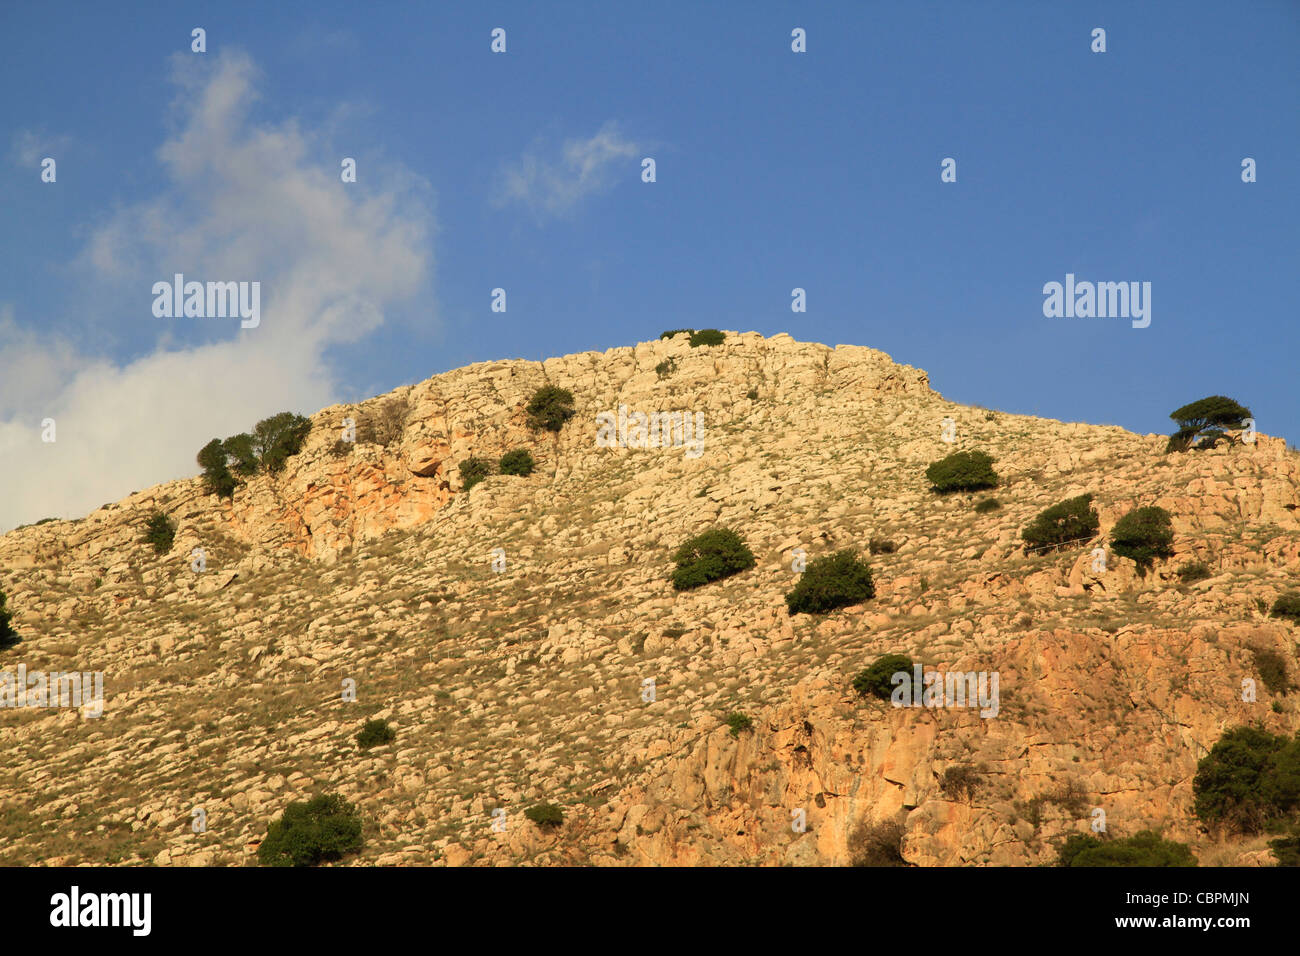 Israel, Mount Precipice in the Lower Galilee - Stock Image